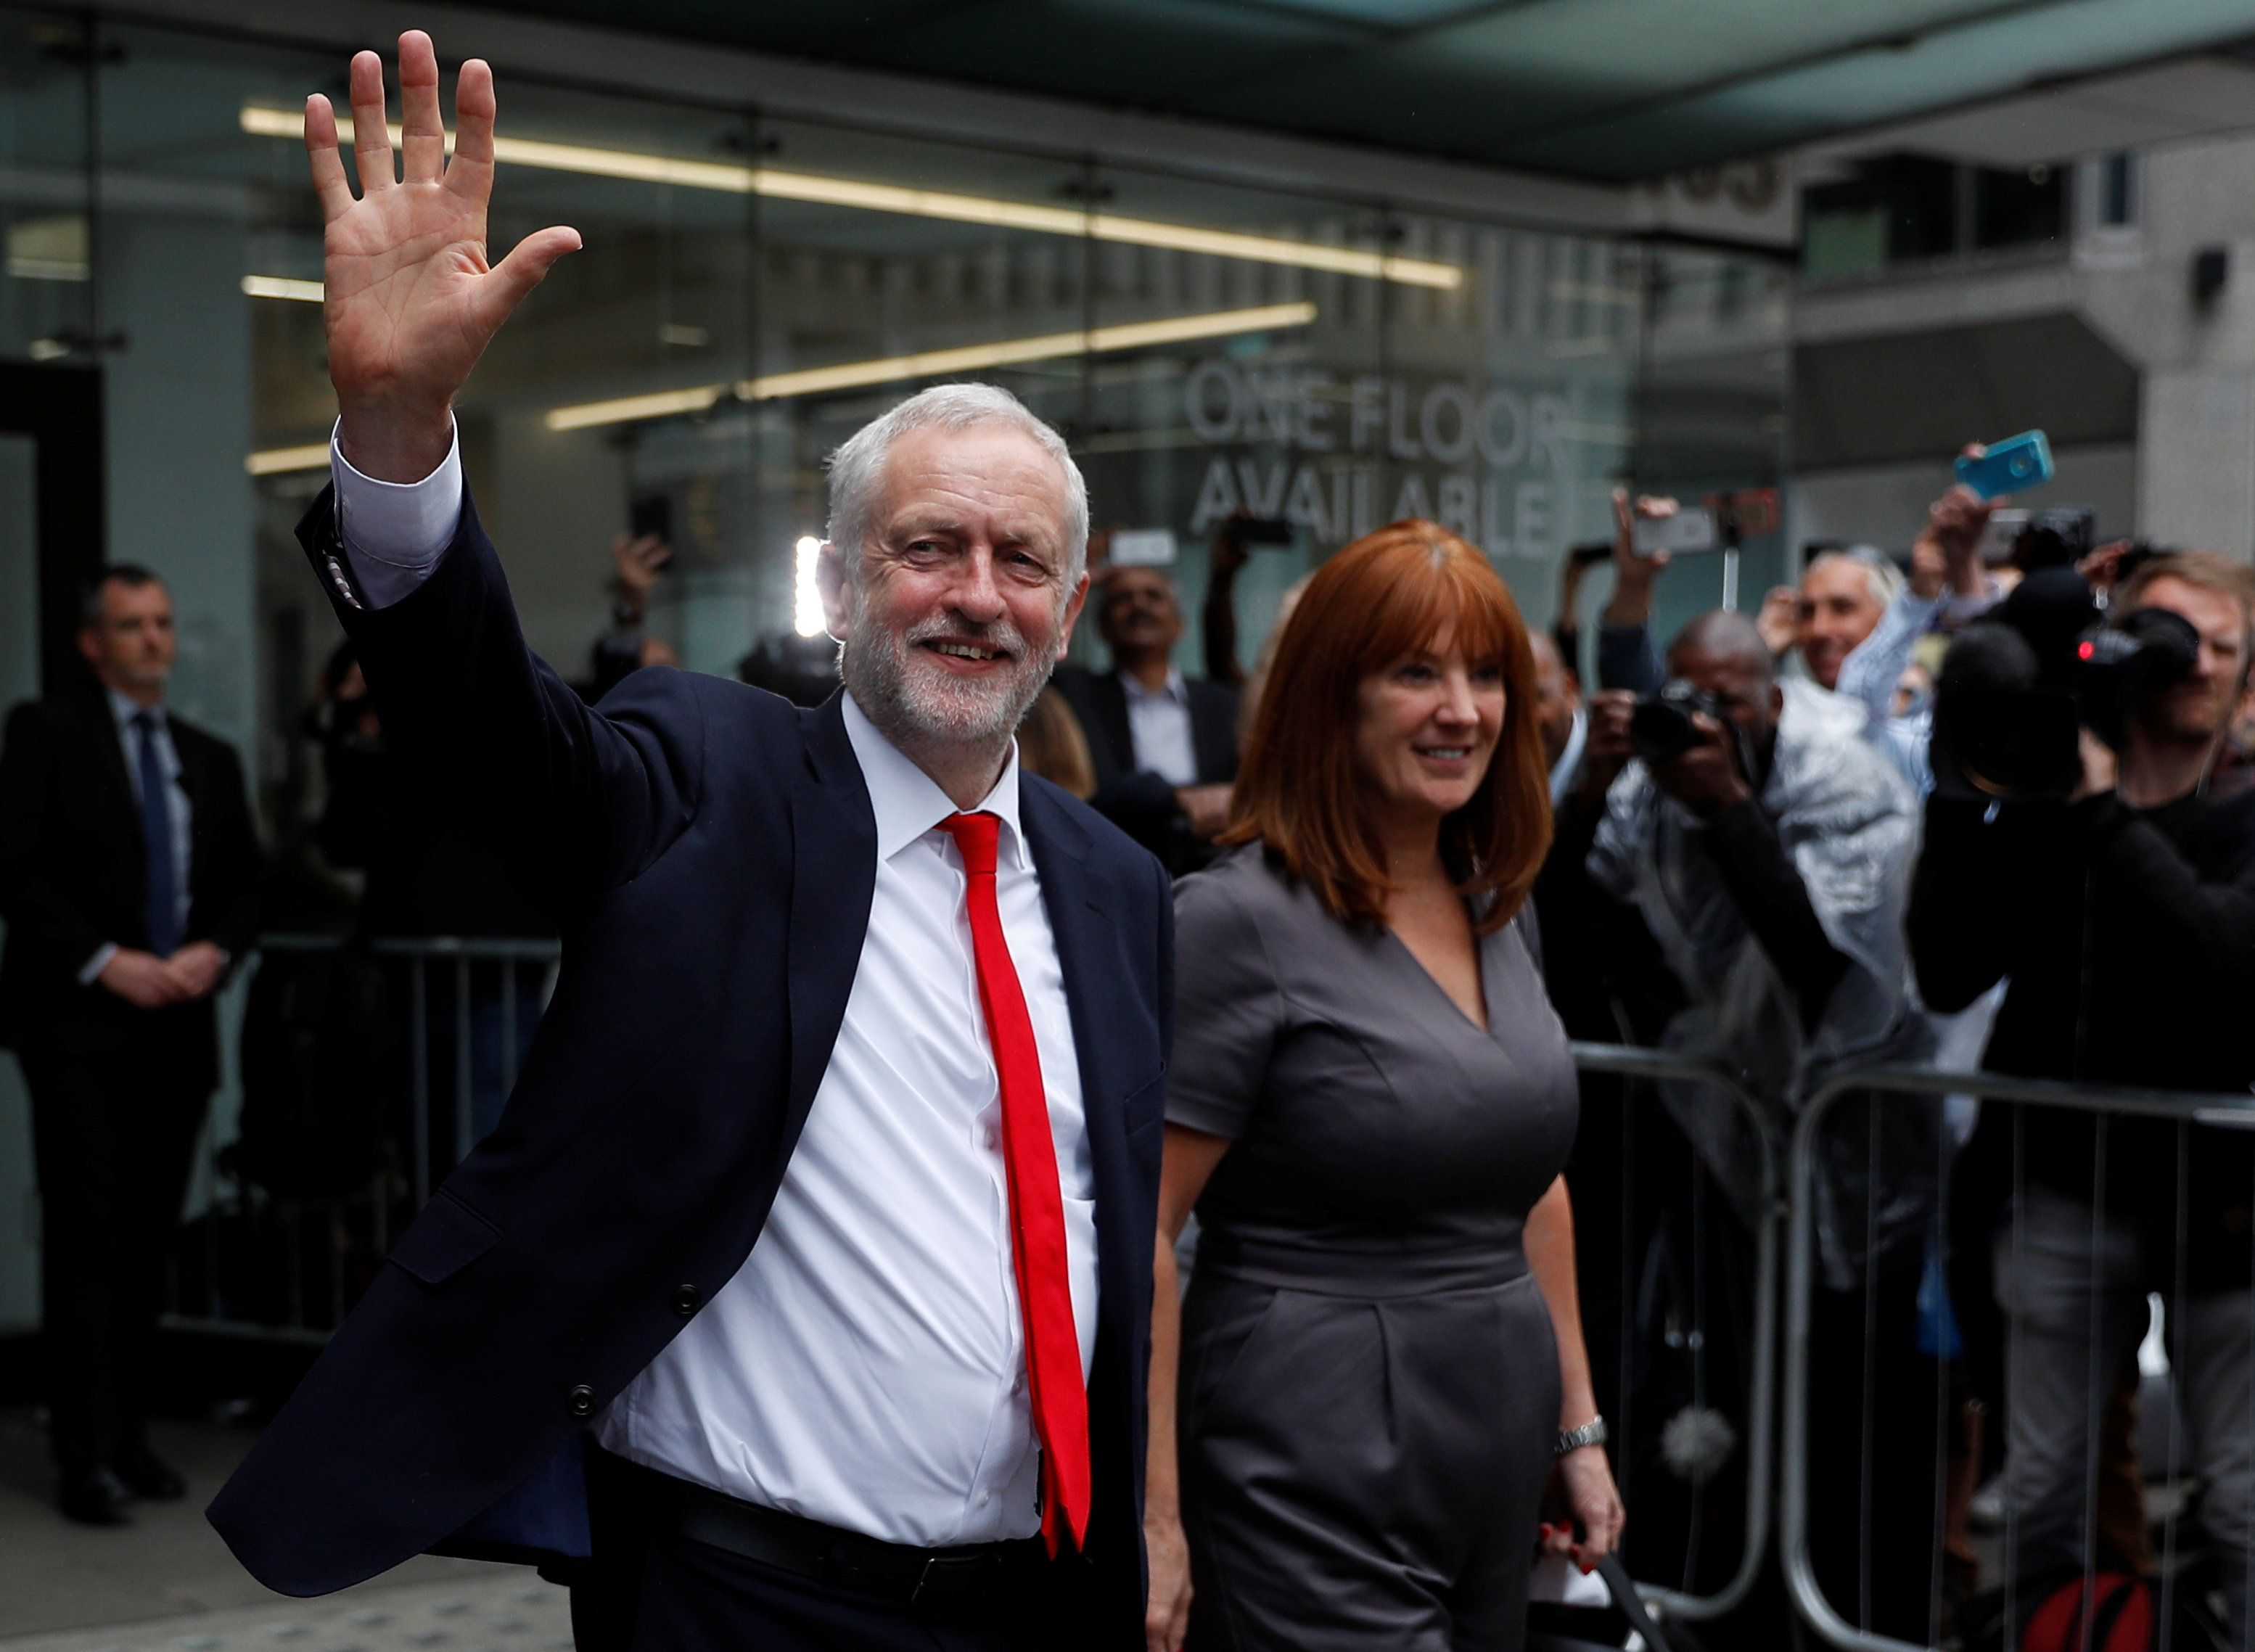 Jeremy Corbyn, leader of Britain's opposition Labour Party, leaves party's headquarters on the morning after Britain's election in London, Britain June 9, 2017.  REUTERS/Peter Nicholls